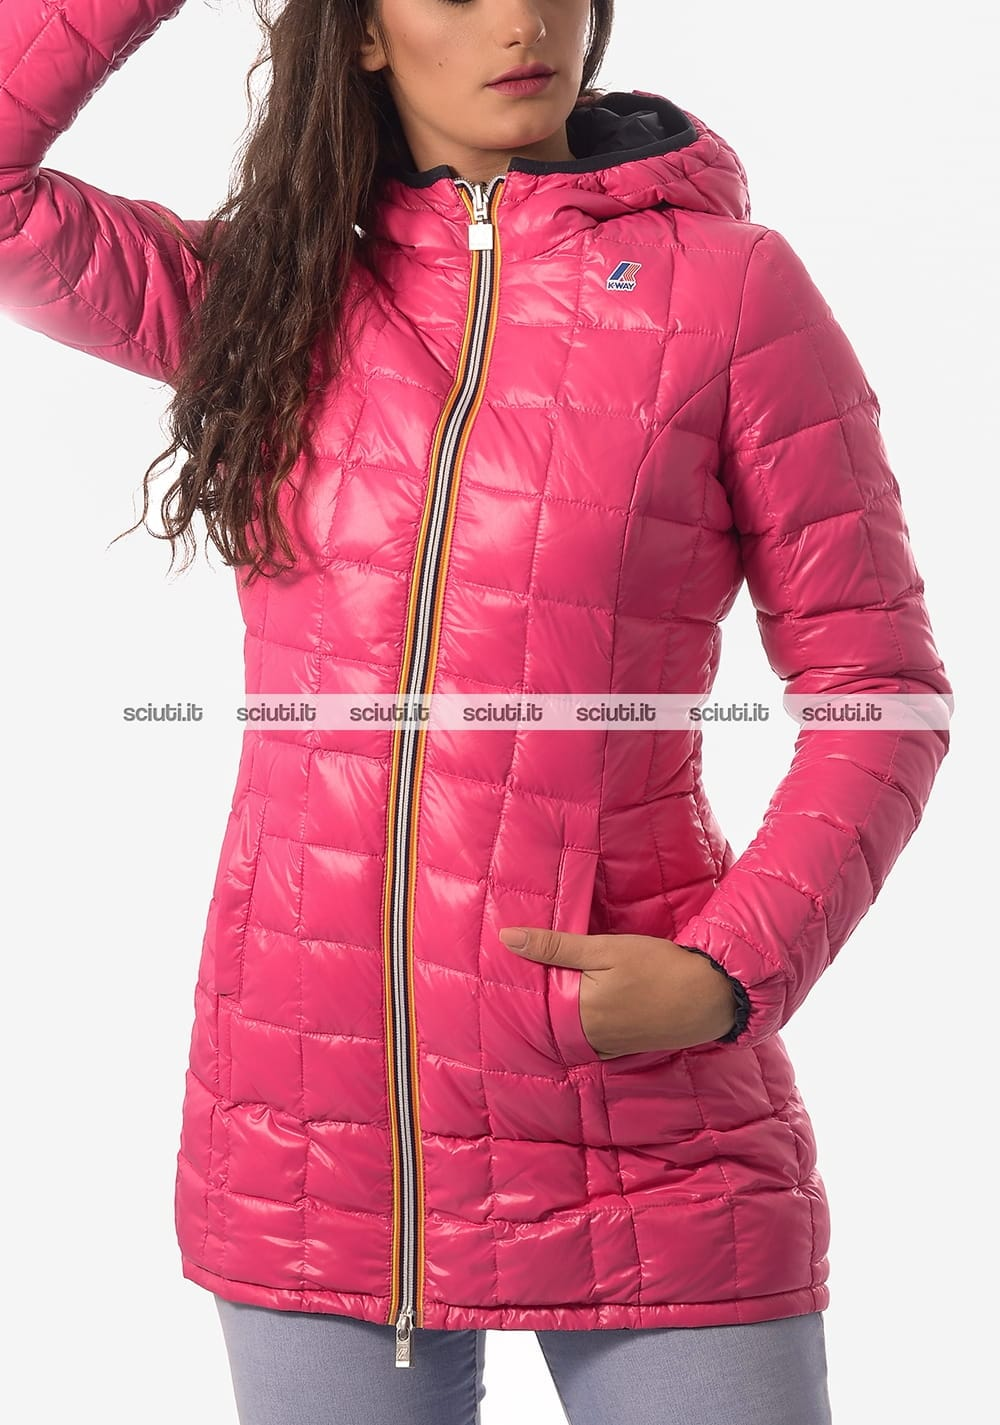 d361db1d4d15ad Giacca Kway donna reversibile Denise Thermo plus double blu fucsia ...